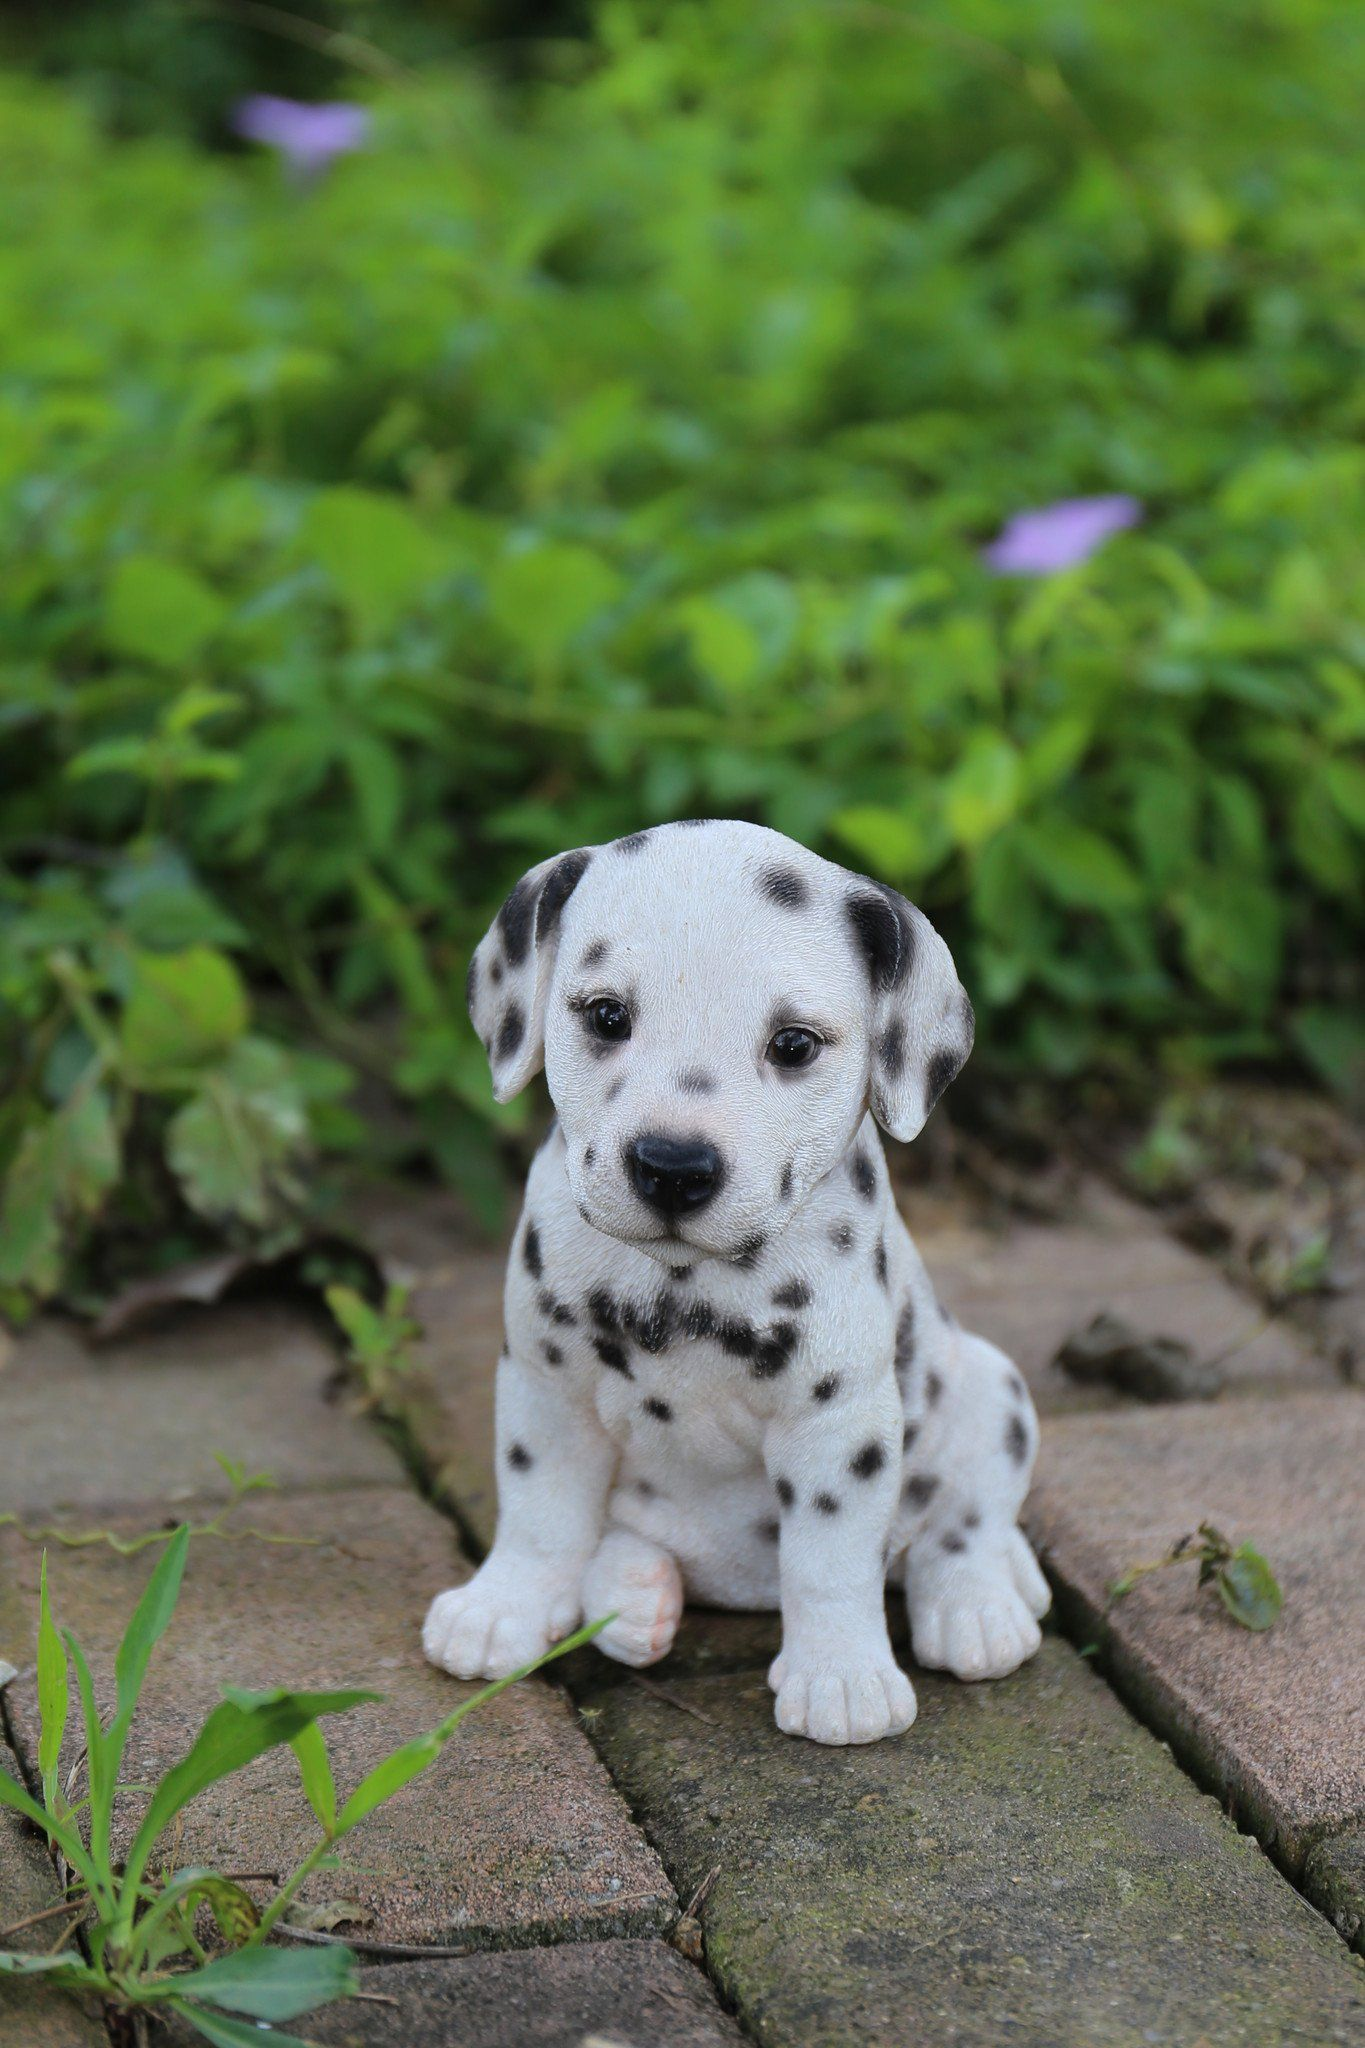 Dalmatian Puppy Dalmatian Puppy Dalmatian Puppies For Sale Cute Puppies